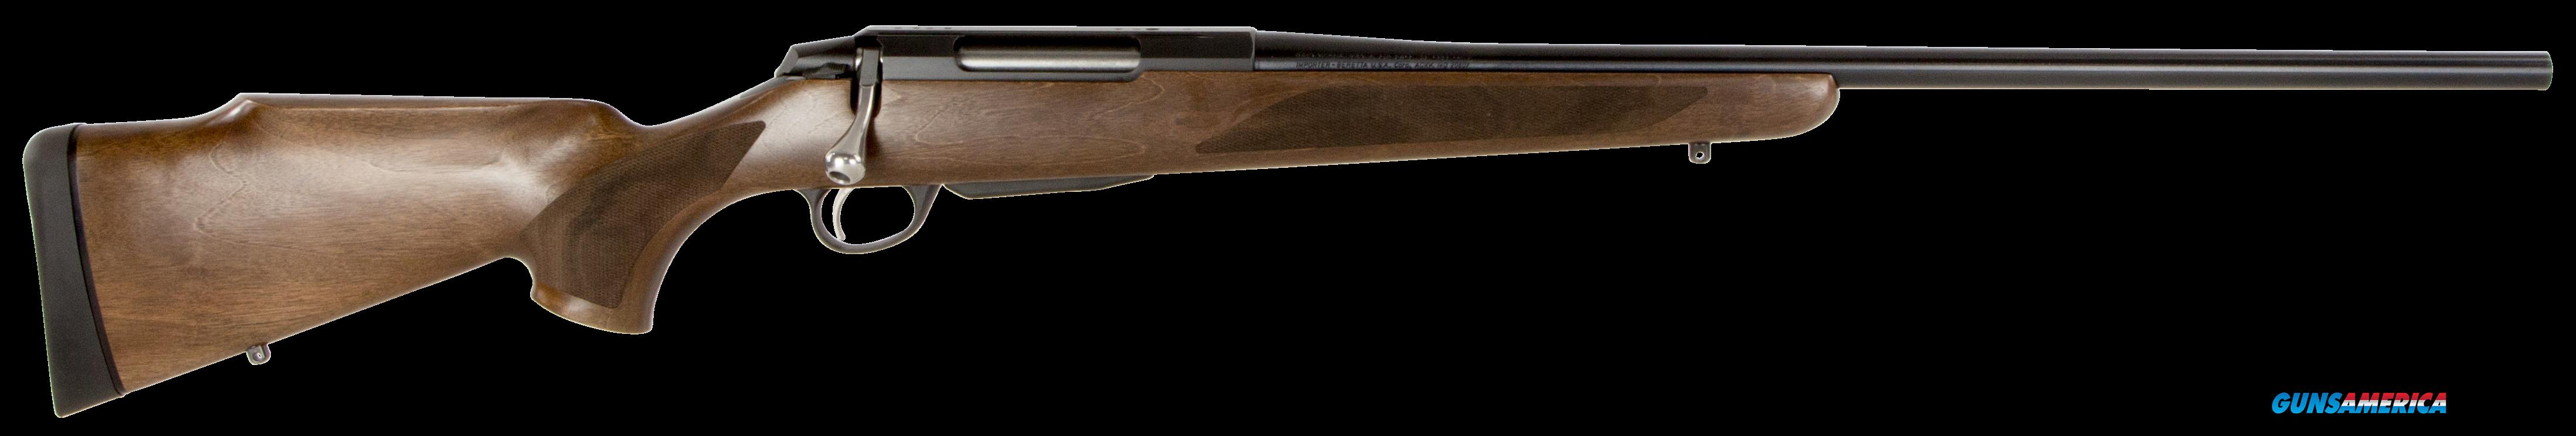 "Tikka T3 JRTXF614 T3x Forest Bolt 22-250 Rem 22.4"" 3+1 Wood Stk Blued  Guns > Rifles > TU Misc Rifles"